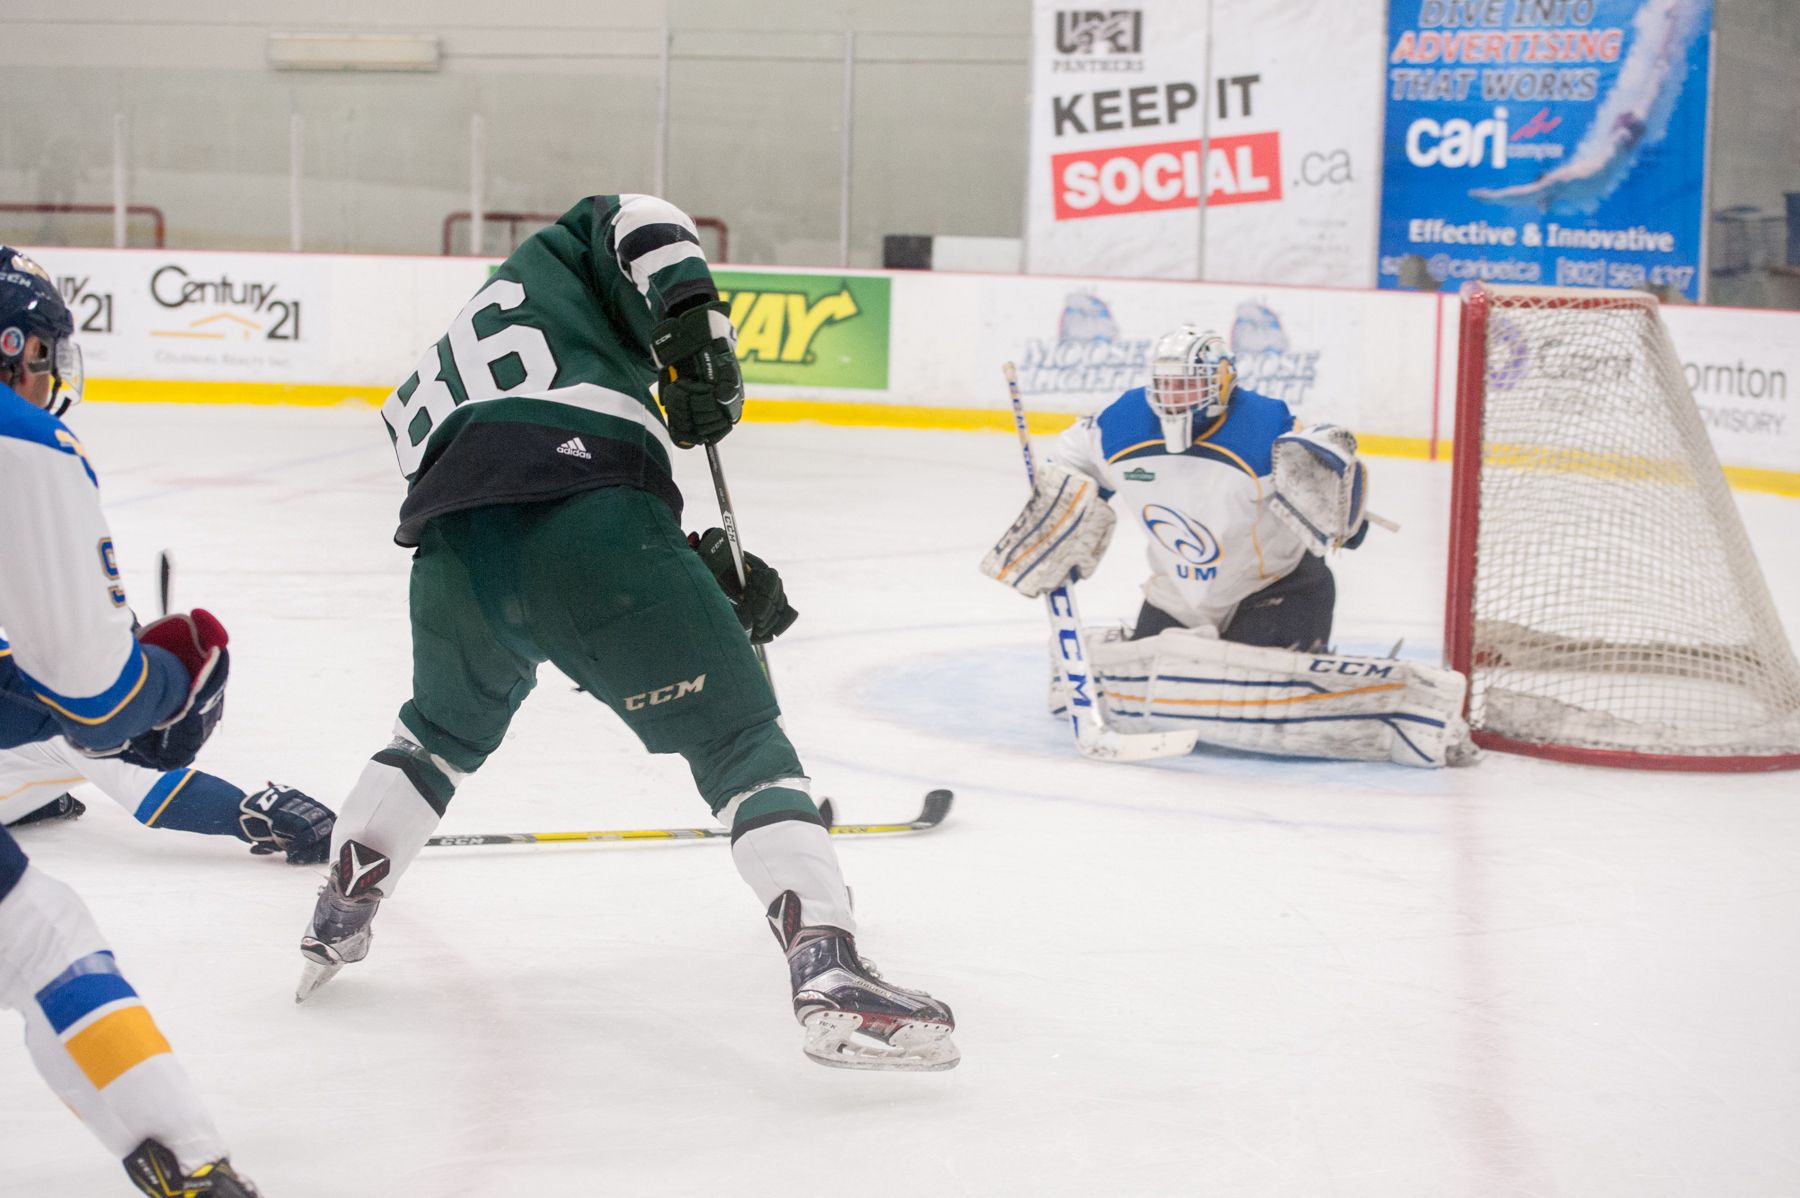 Panther forward Marcus power drives to the net for a scoring chance.